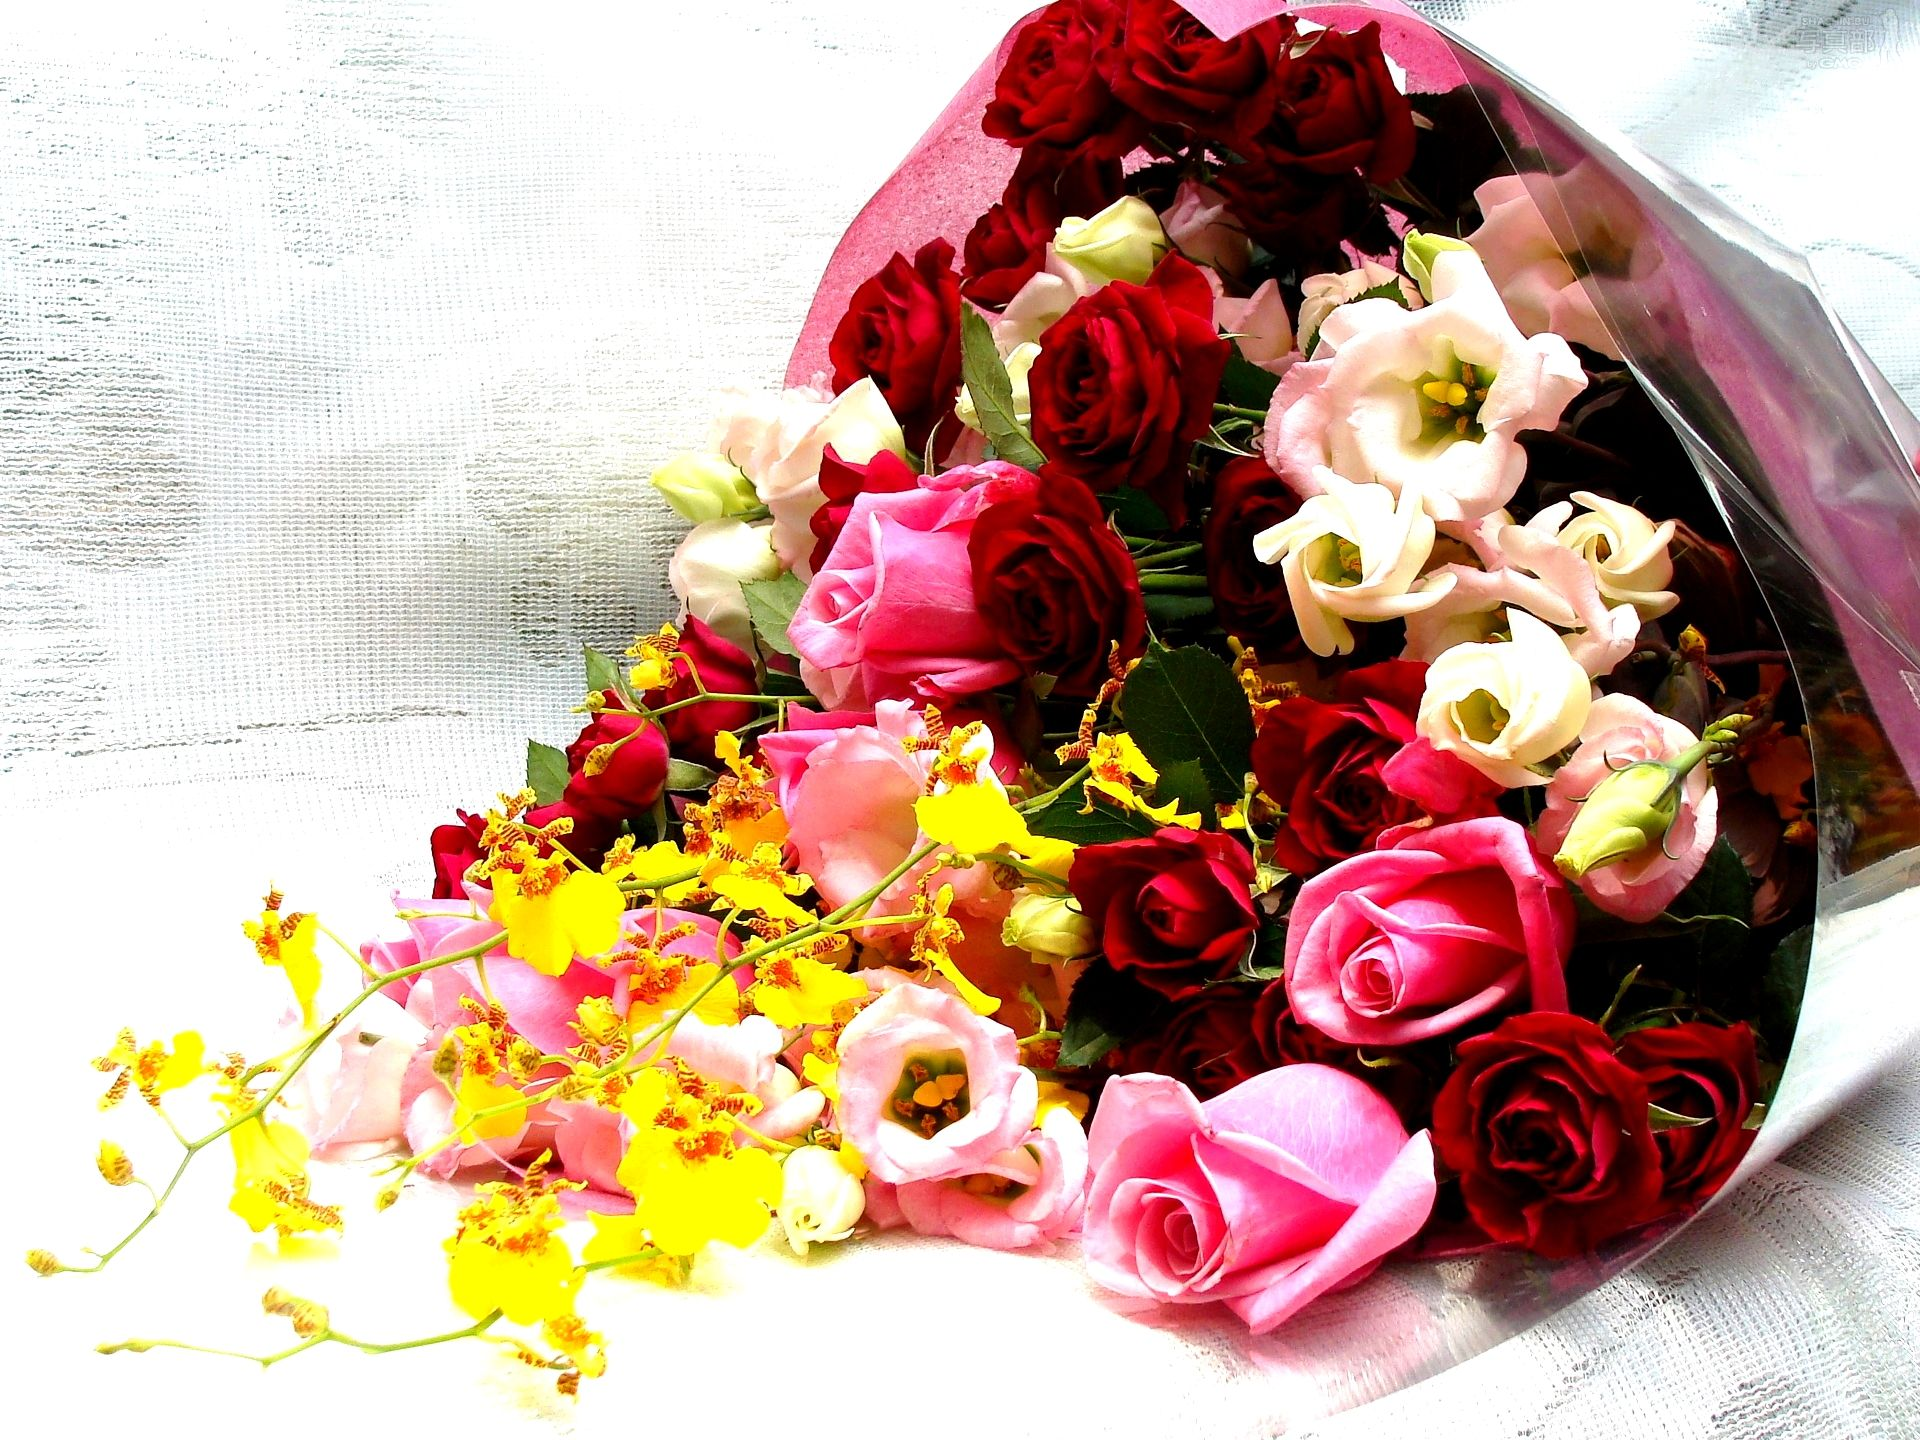 A beautiful bouquet of flowers makes me so happy personal care a beautiful bouquet of flowers makes me so happy dhlflorist Gallery